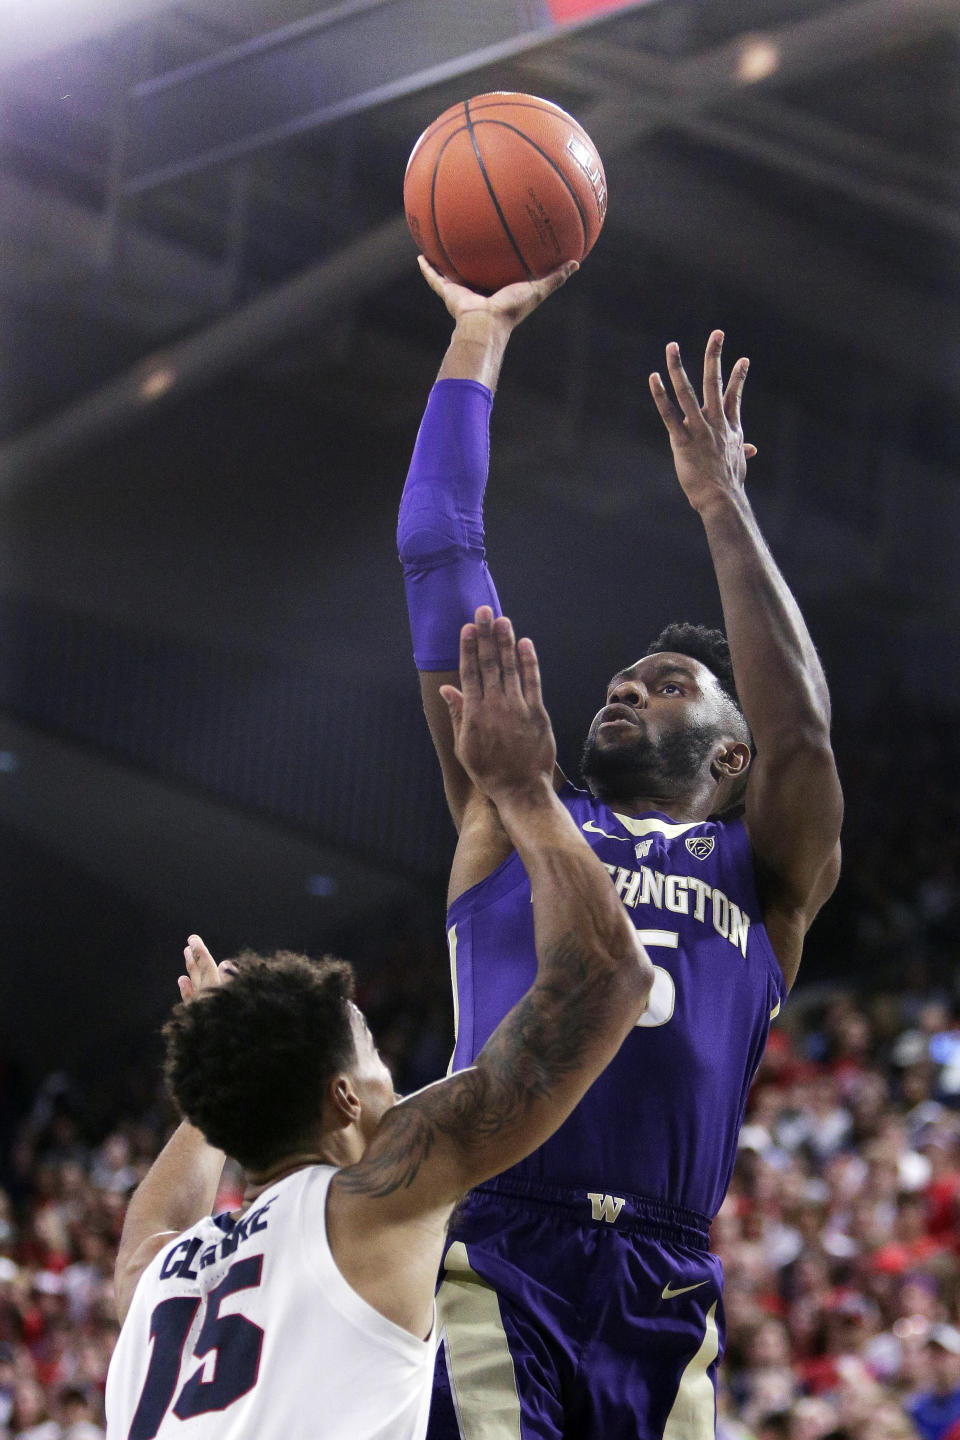 Washington guard Jaylen Nowell, right, shoots while defended by Gonzaga forward Brandon Clarke (15) during the first half of an NCAA college basketball game in Spokane, Wash., Wednesday, Dec. 5, 2018. (AP Photo/Young Kwak)